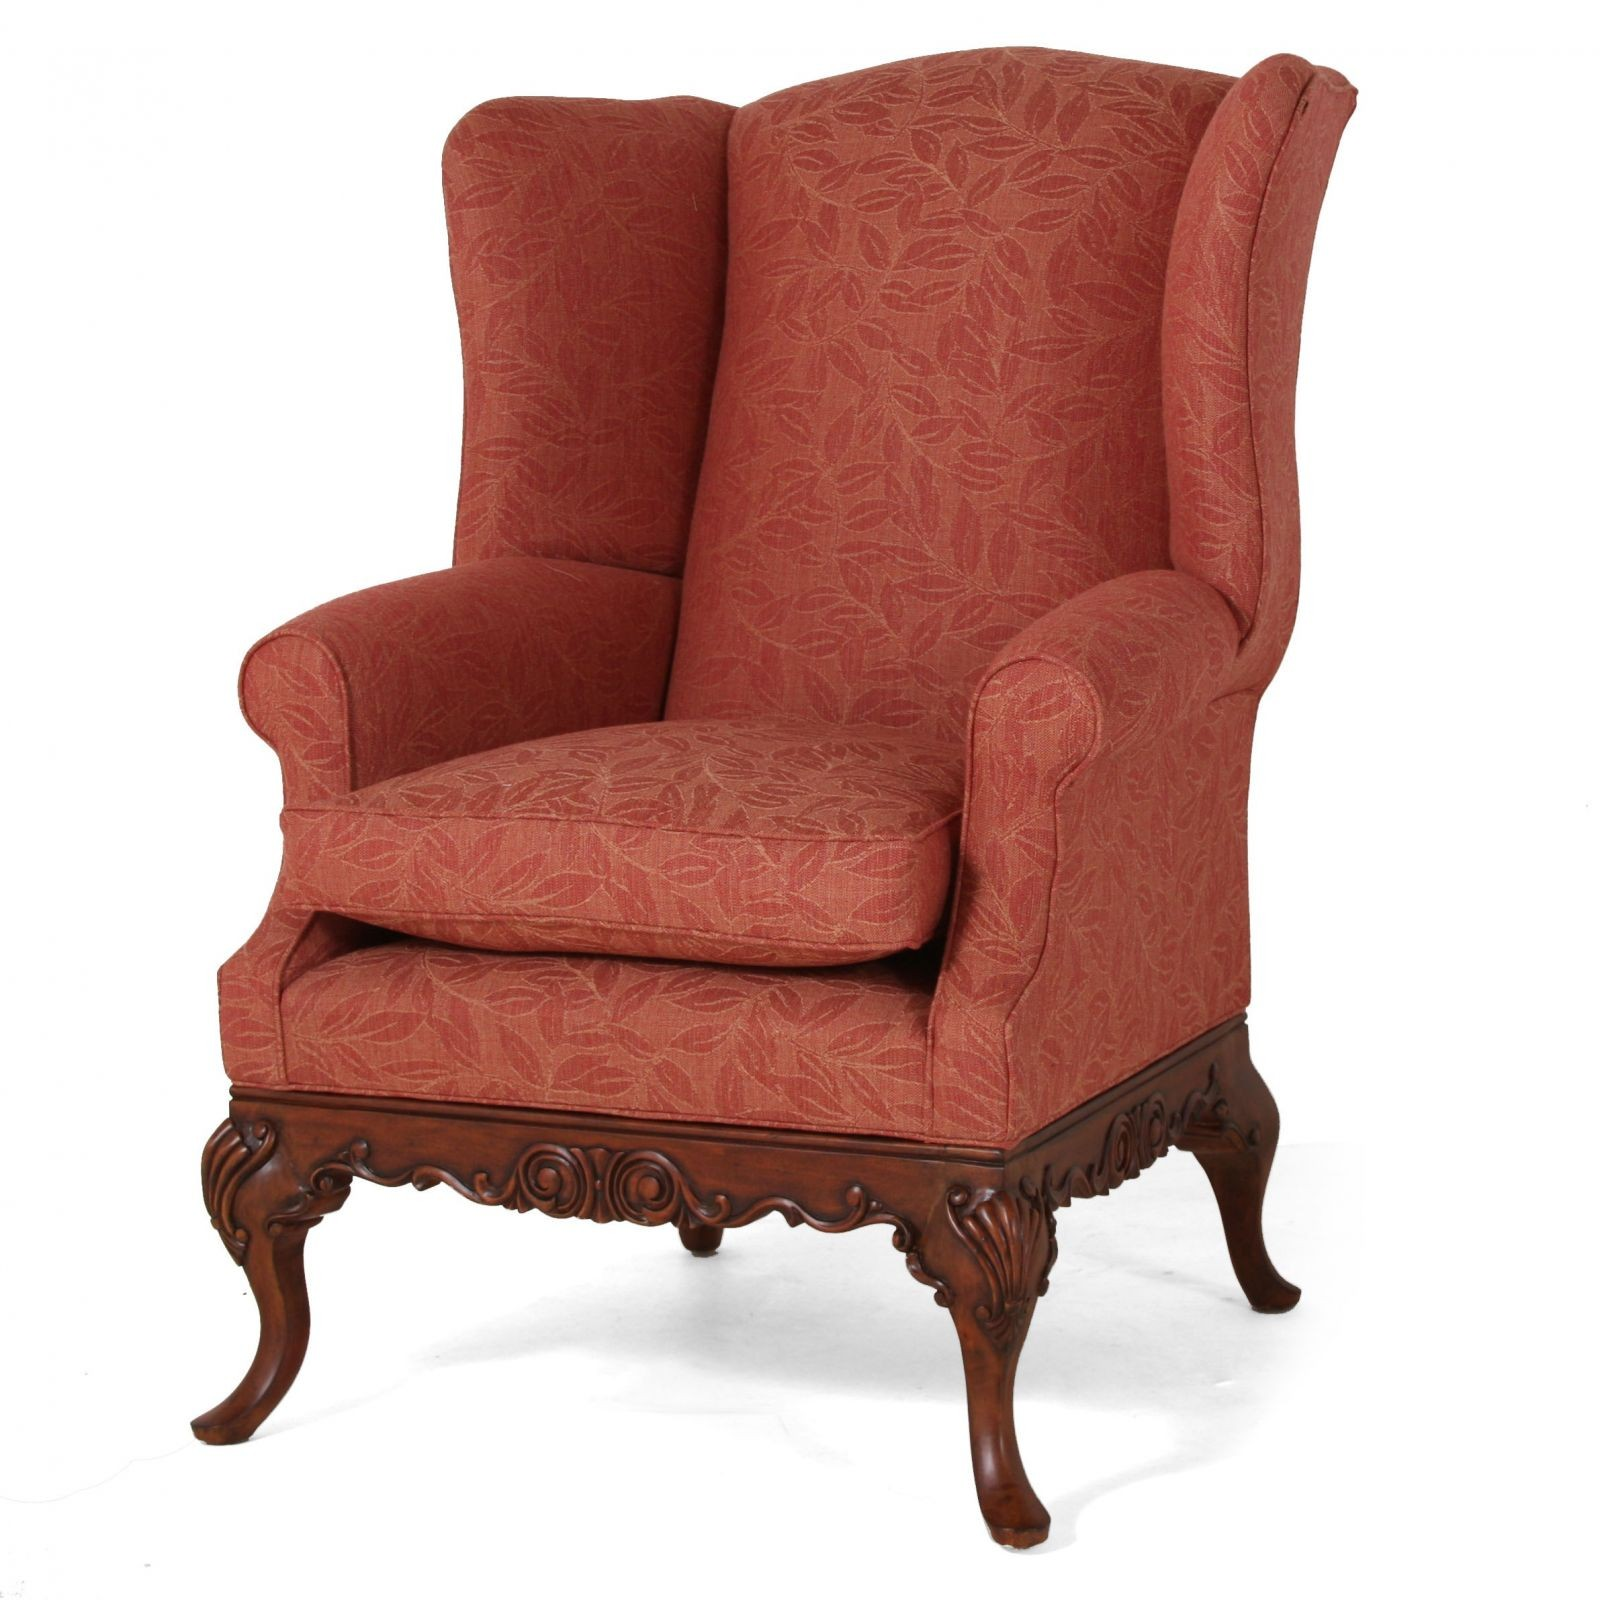 Sonning wing chair in Scottish Wool - Leaf Rust